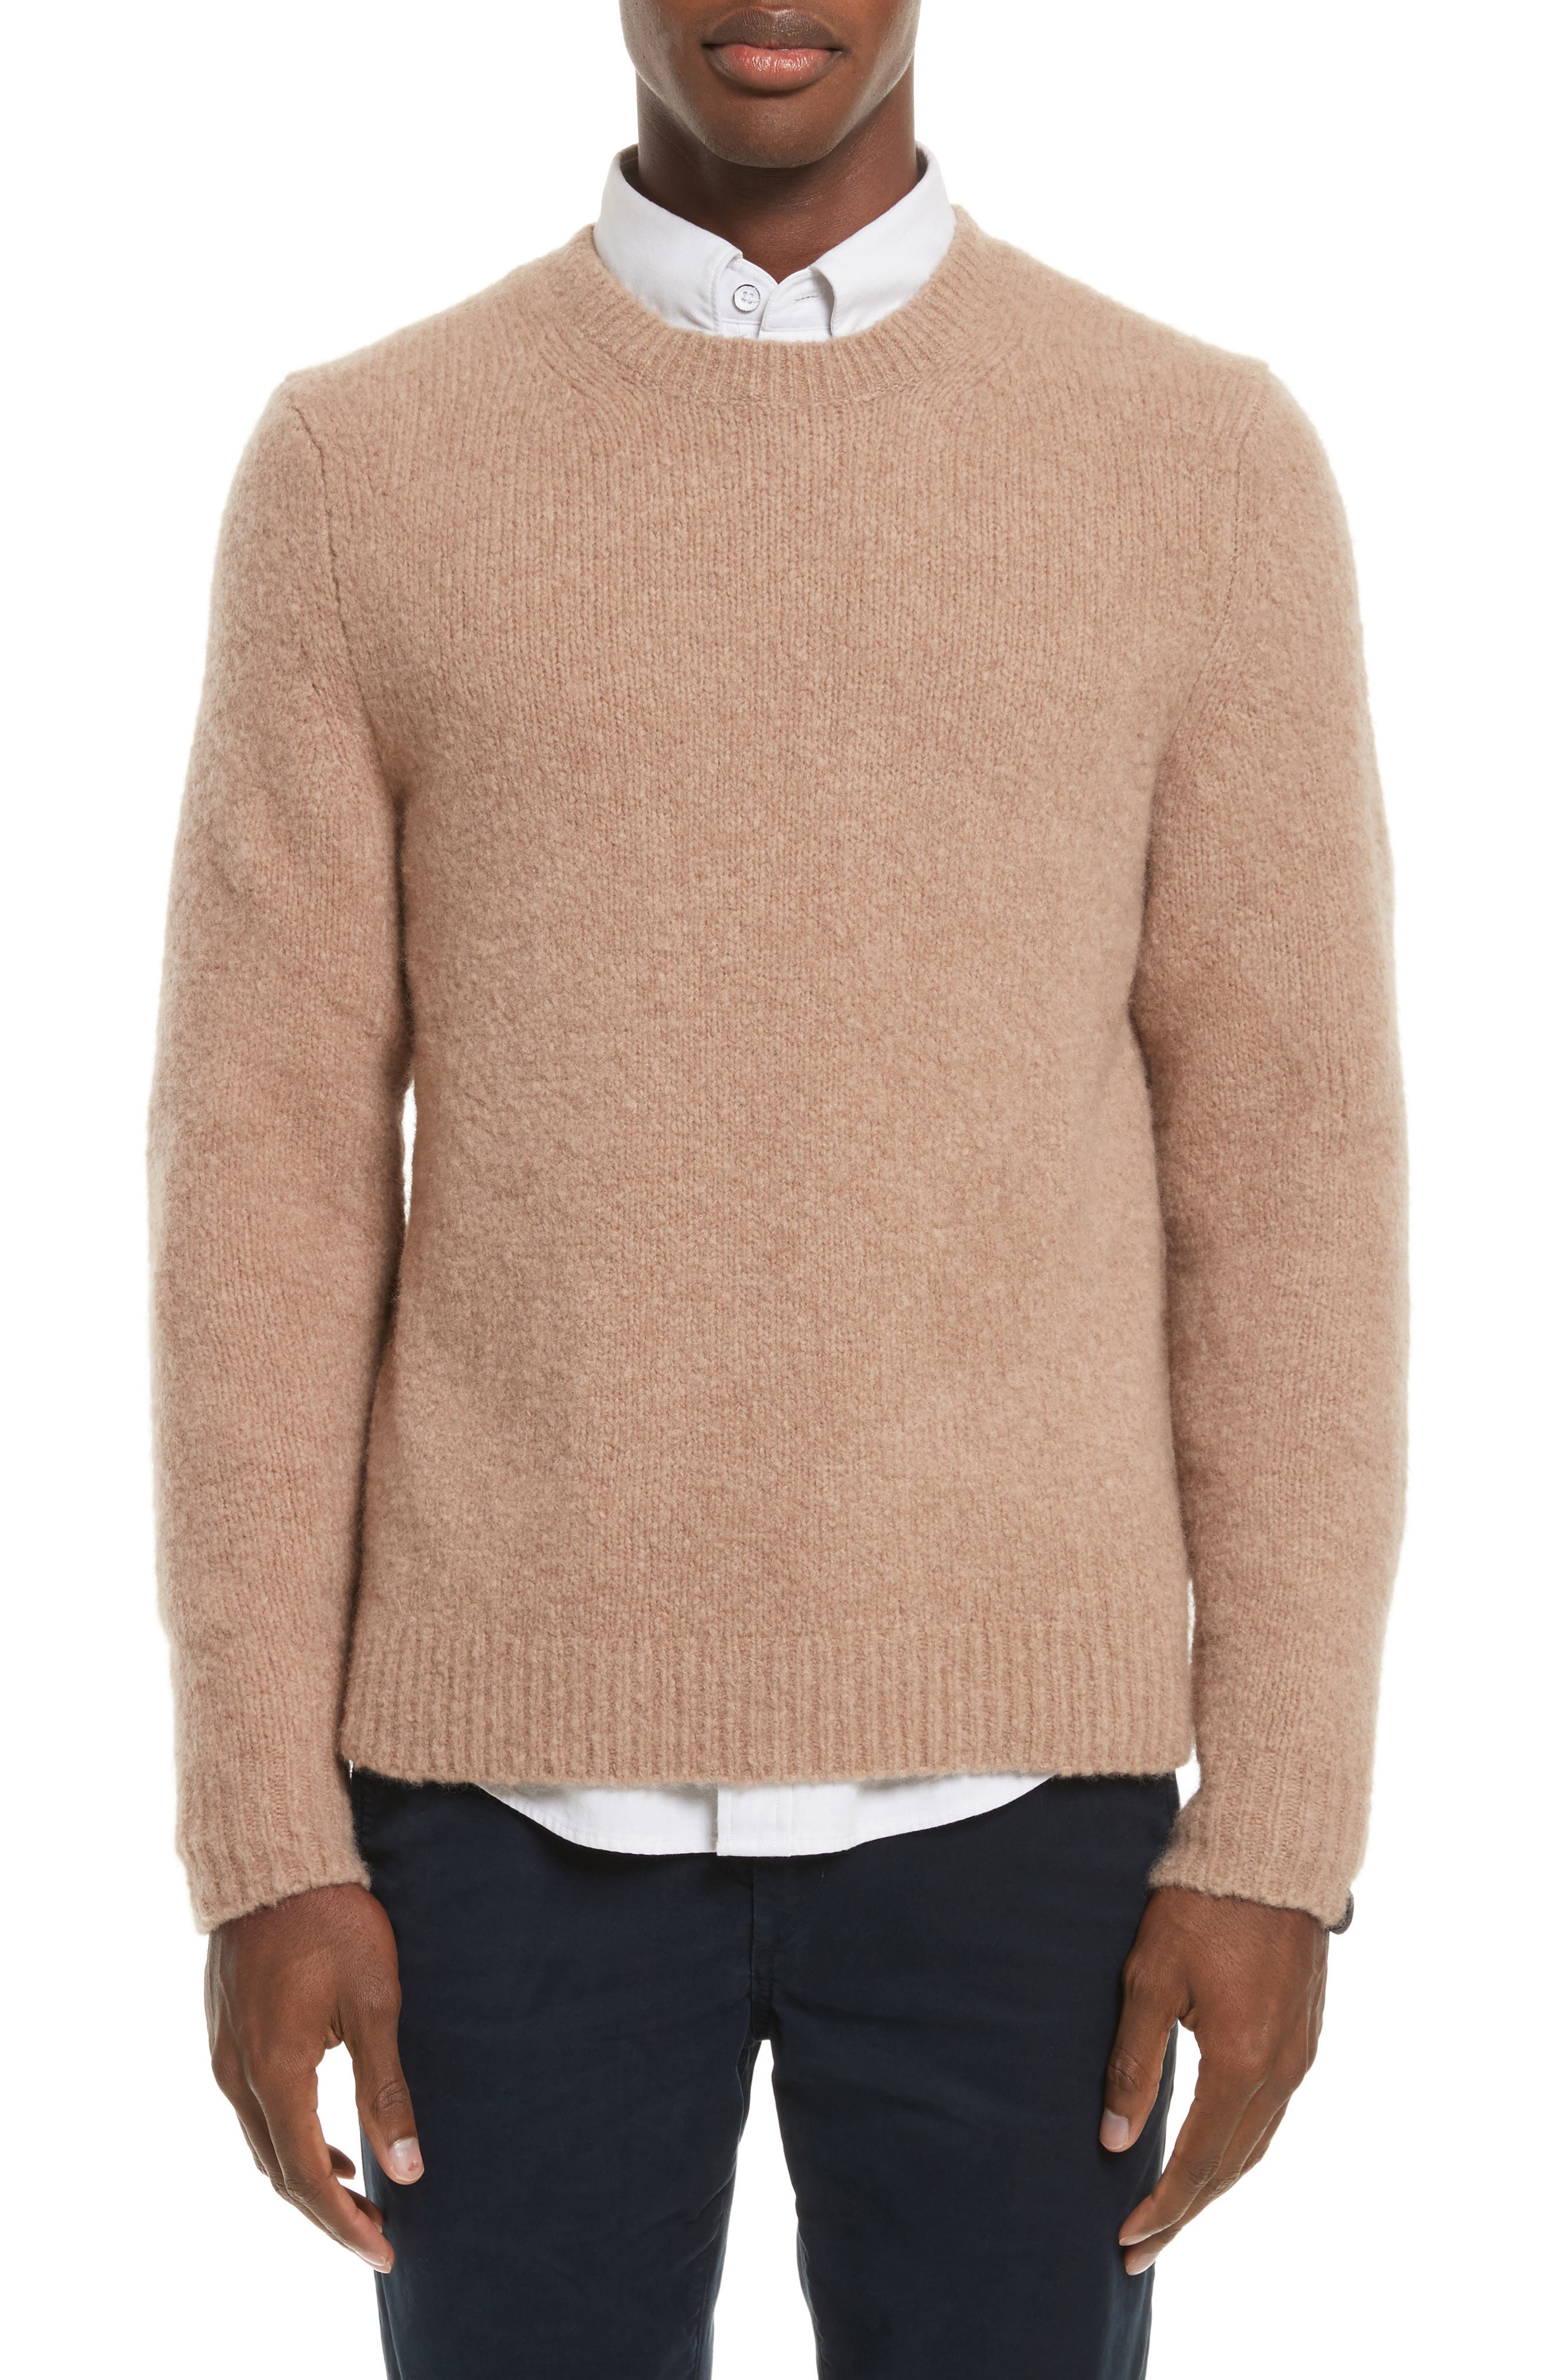 Charles Merino Wool Blend Sweater,                         Main,                         color, Camel